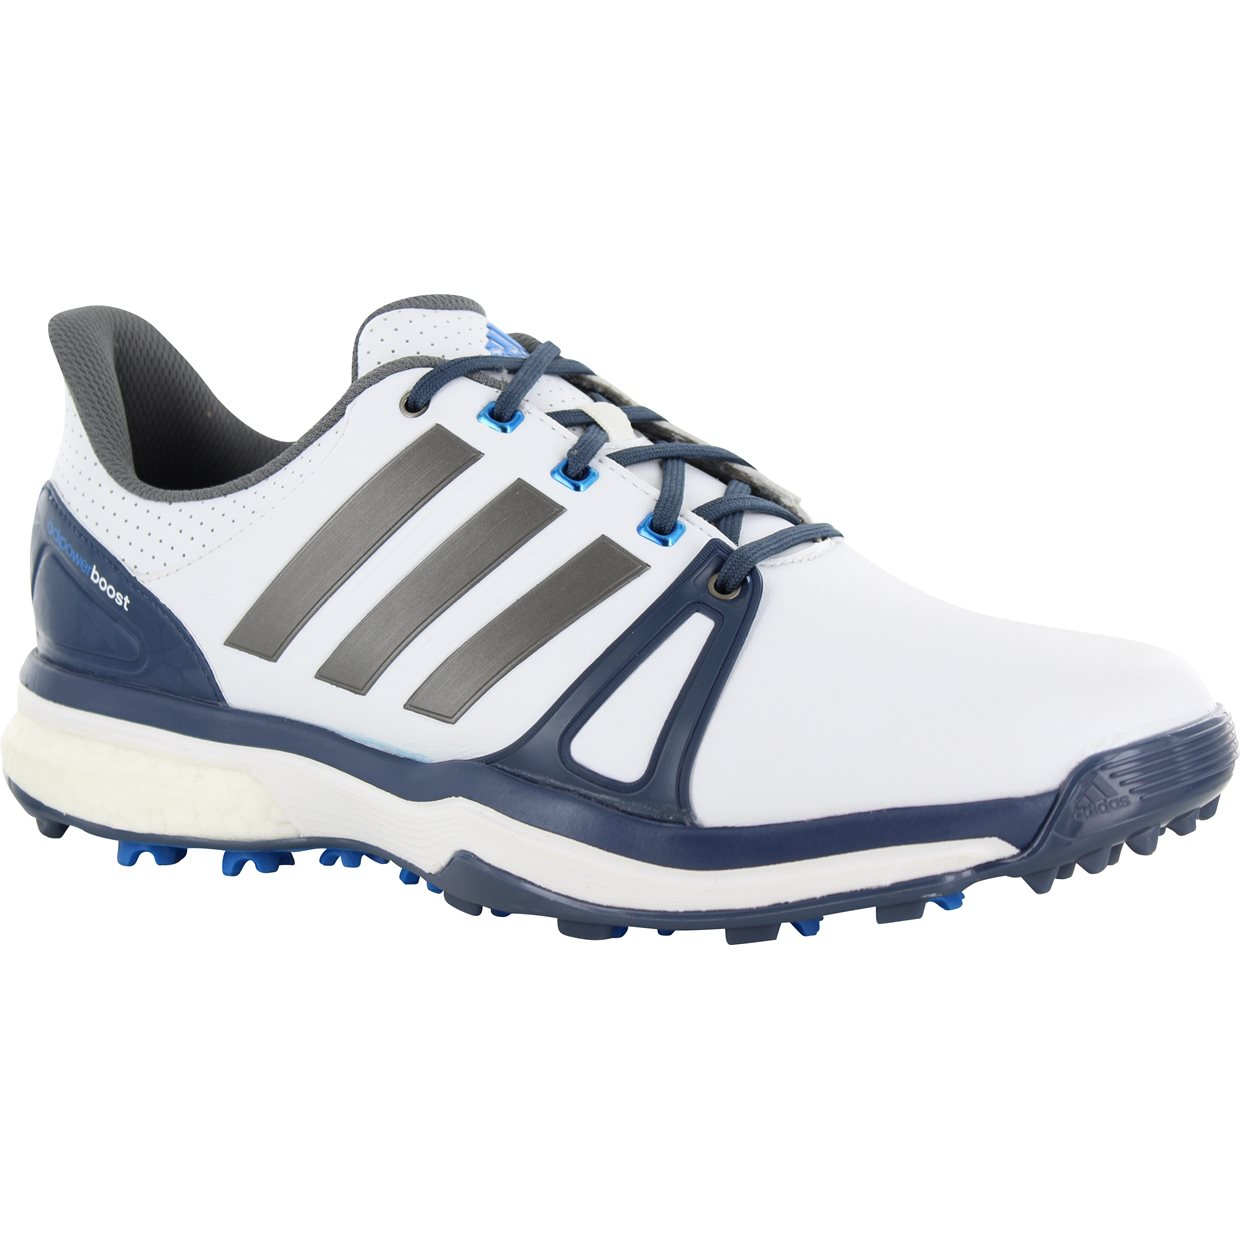 adidas golf shoes white blue